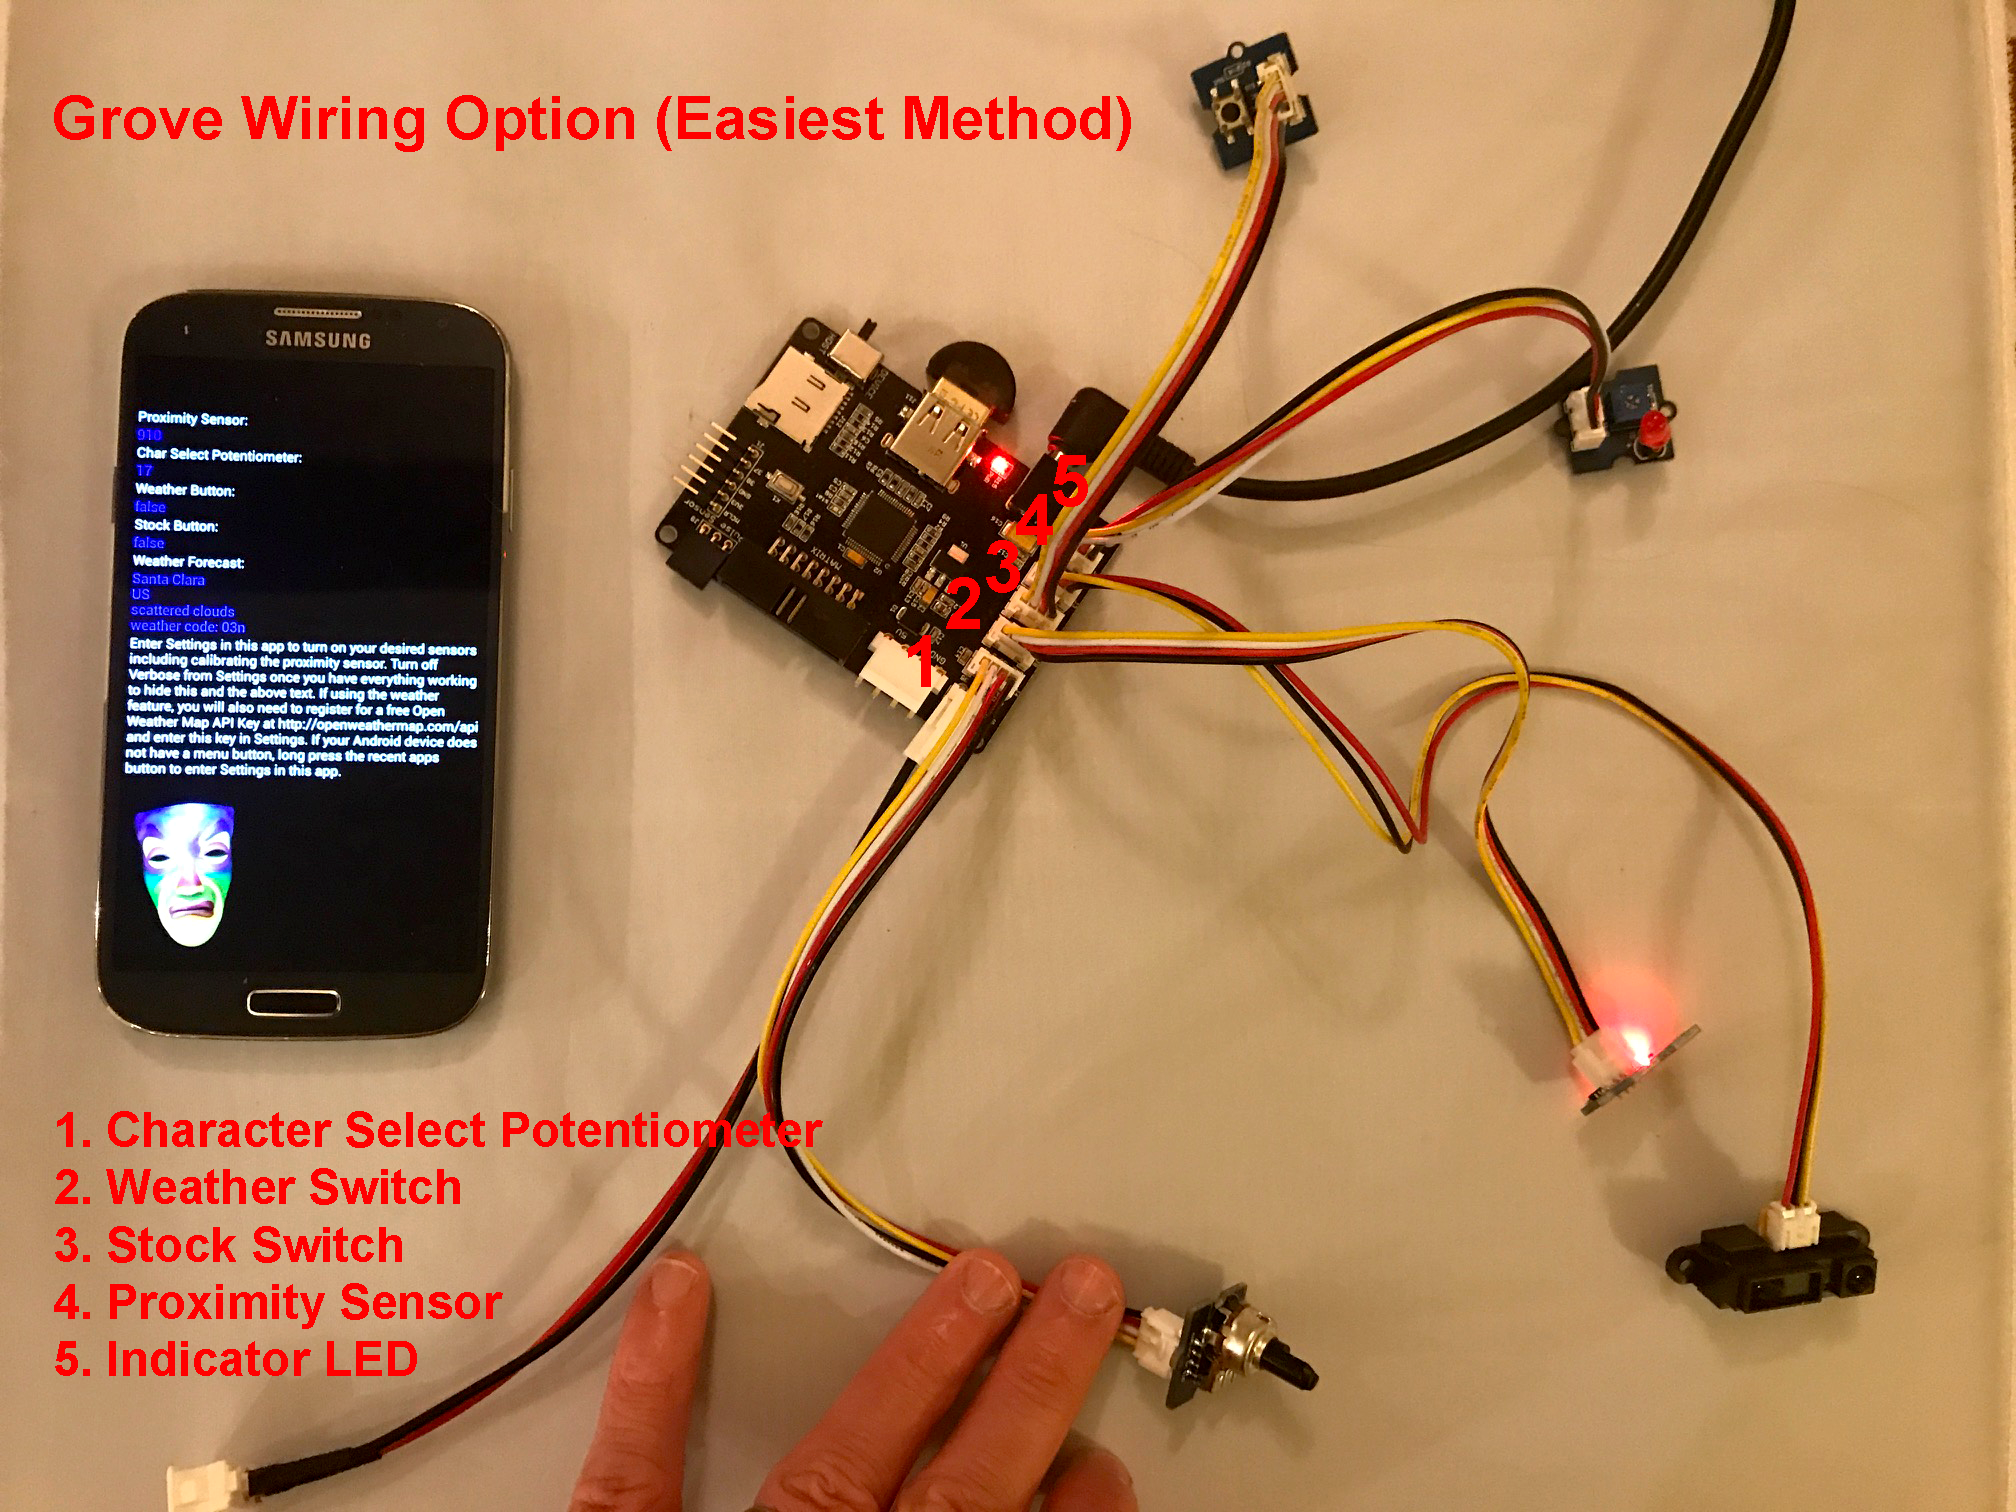 Picture of Wiring Up the Circuit With Grove Plug and Play Sensors - Easy Method